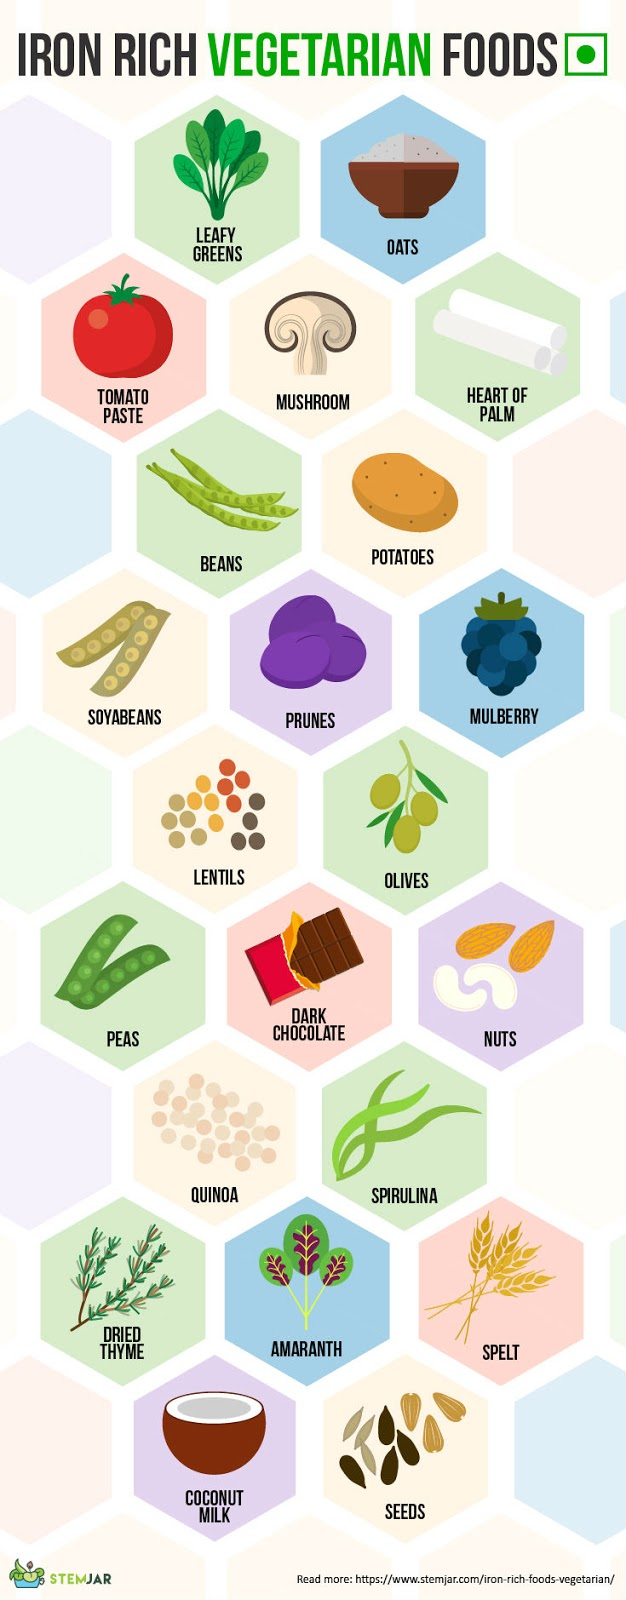 vegetarian high protein sources,Cocoa Powder,Cheese and cheese,Sesame, Poppy Seeds and Sunflower Seeds,Seed seeds chia ,Leafy Vegetables,Soyabean,Tofu ,Chickpeas, Peas-vegetables,Beans,Dried Nuts,almond,vegetarian high protein sources CHART.Iron-rich-vegetarian-food-infographic.